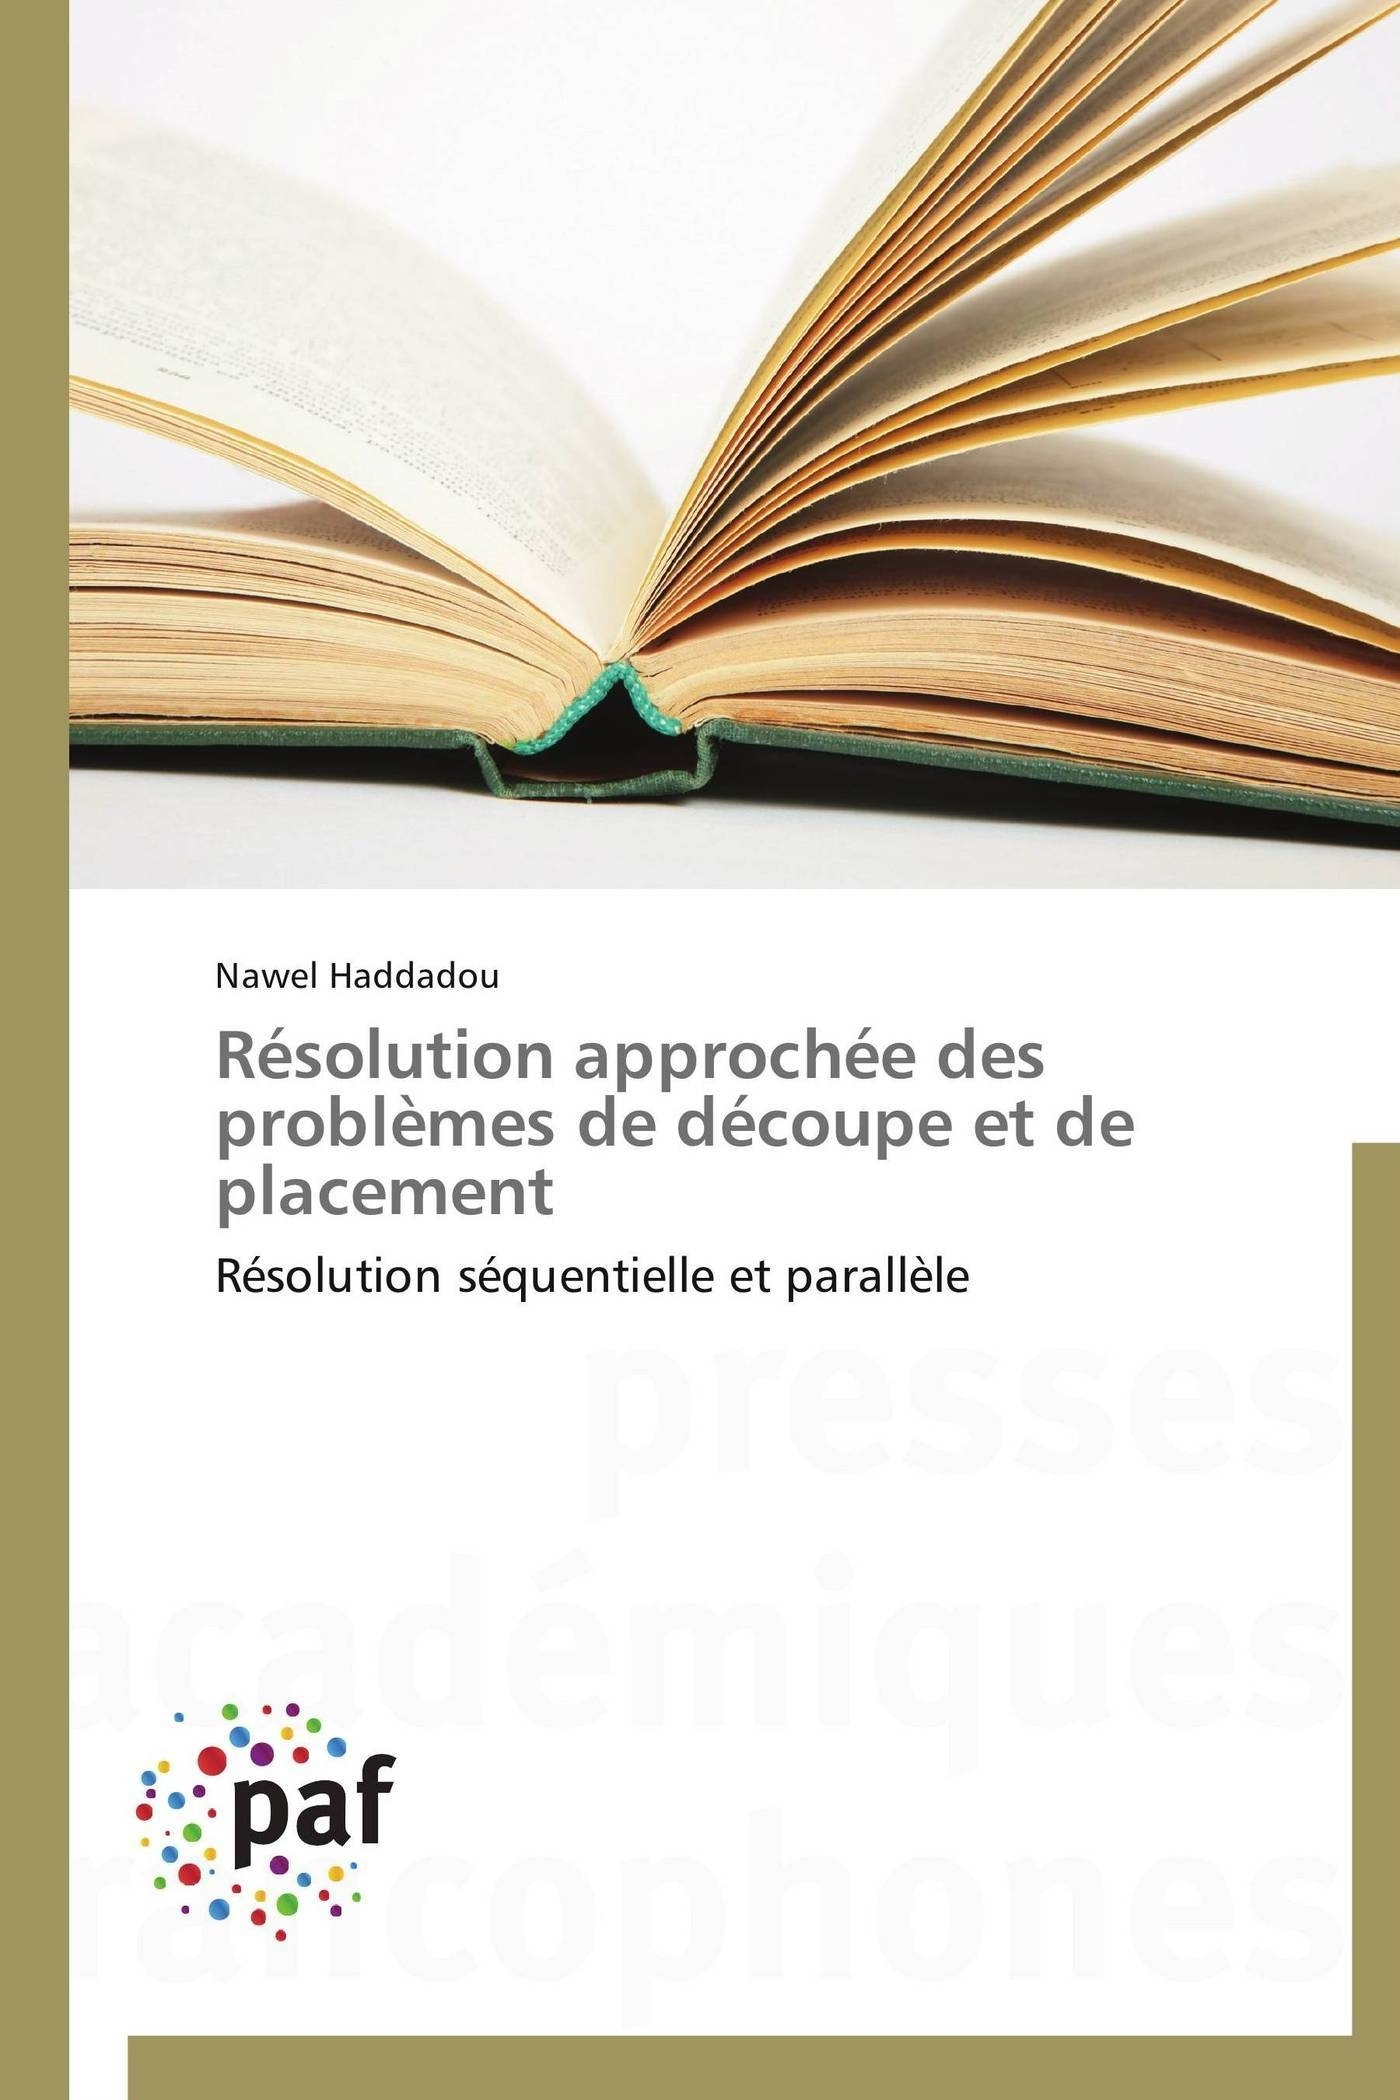 RESOLUTION APPROCHEE DES PROBLEMES DE DECOUPE ET DE PLACEMENT